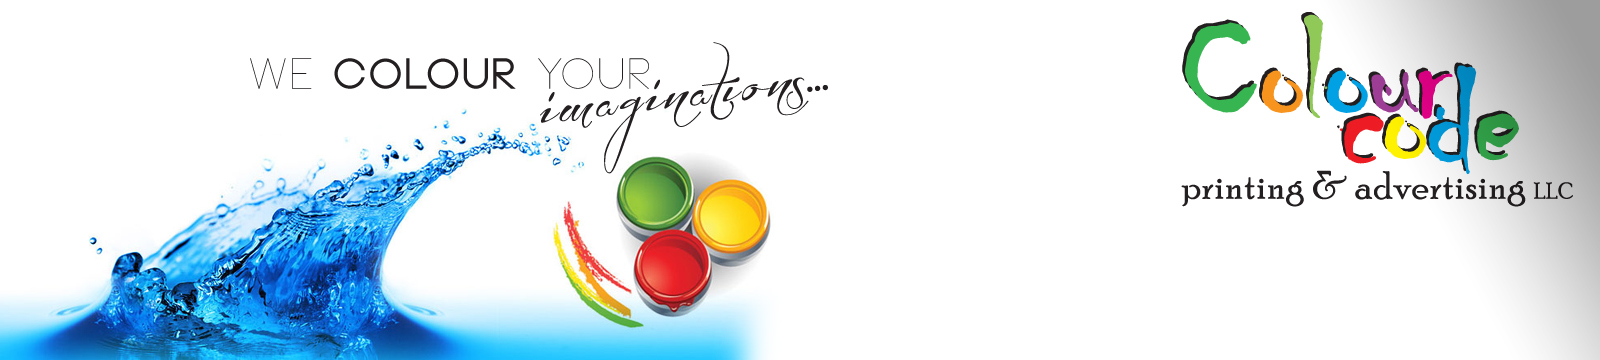 Colour Code Printing & Advertising